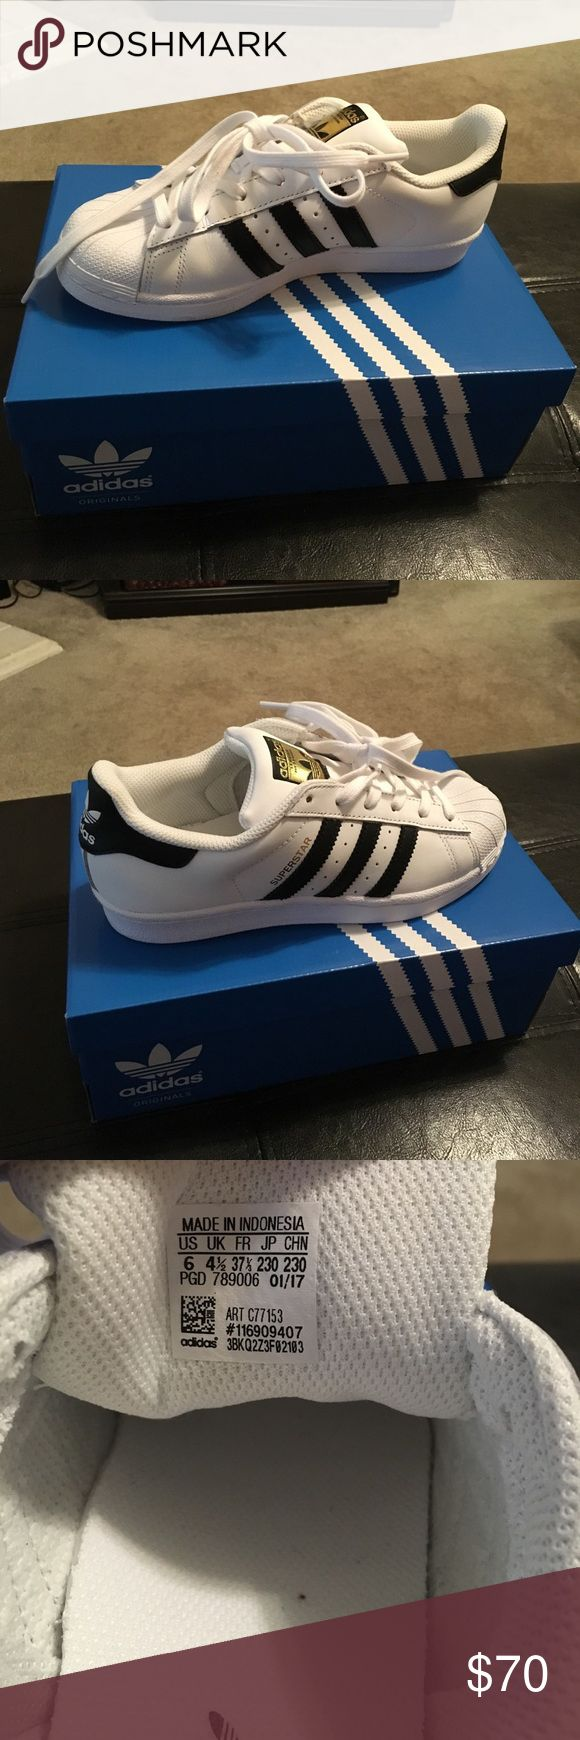 Adidas Original Superstar Size 6 shoes These are brand-new never worn Adidas original superstar shoes 💙 size 6 women's adidas Shoes Athletic Shoes